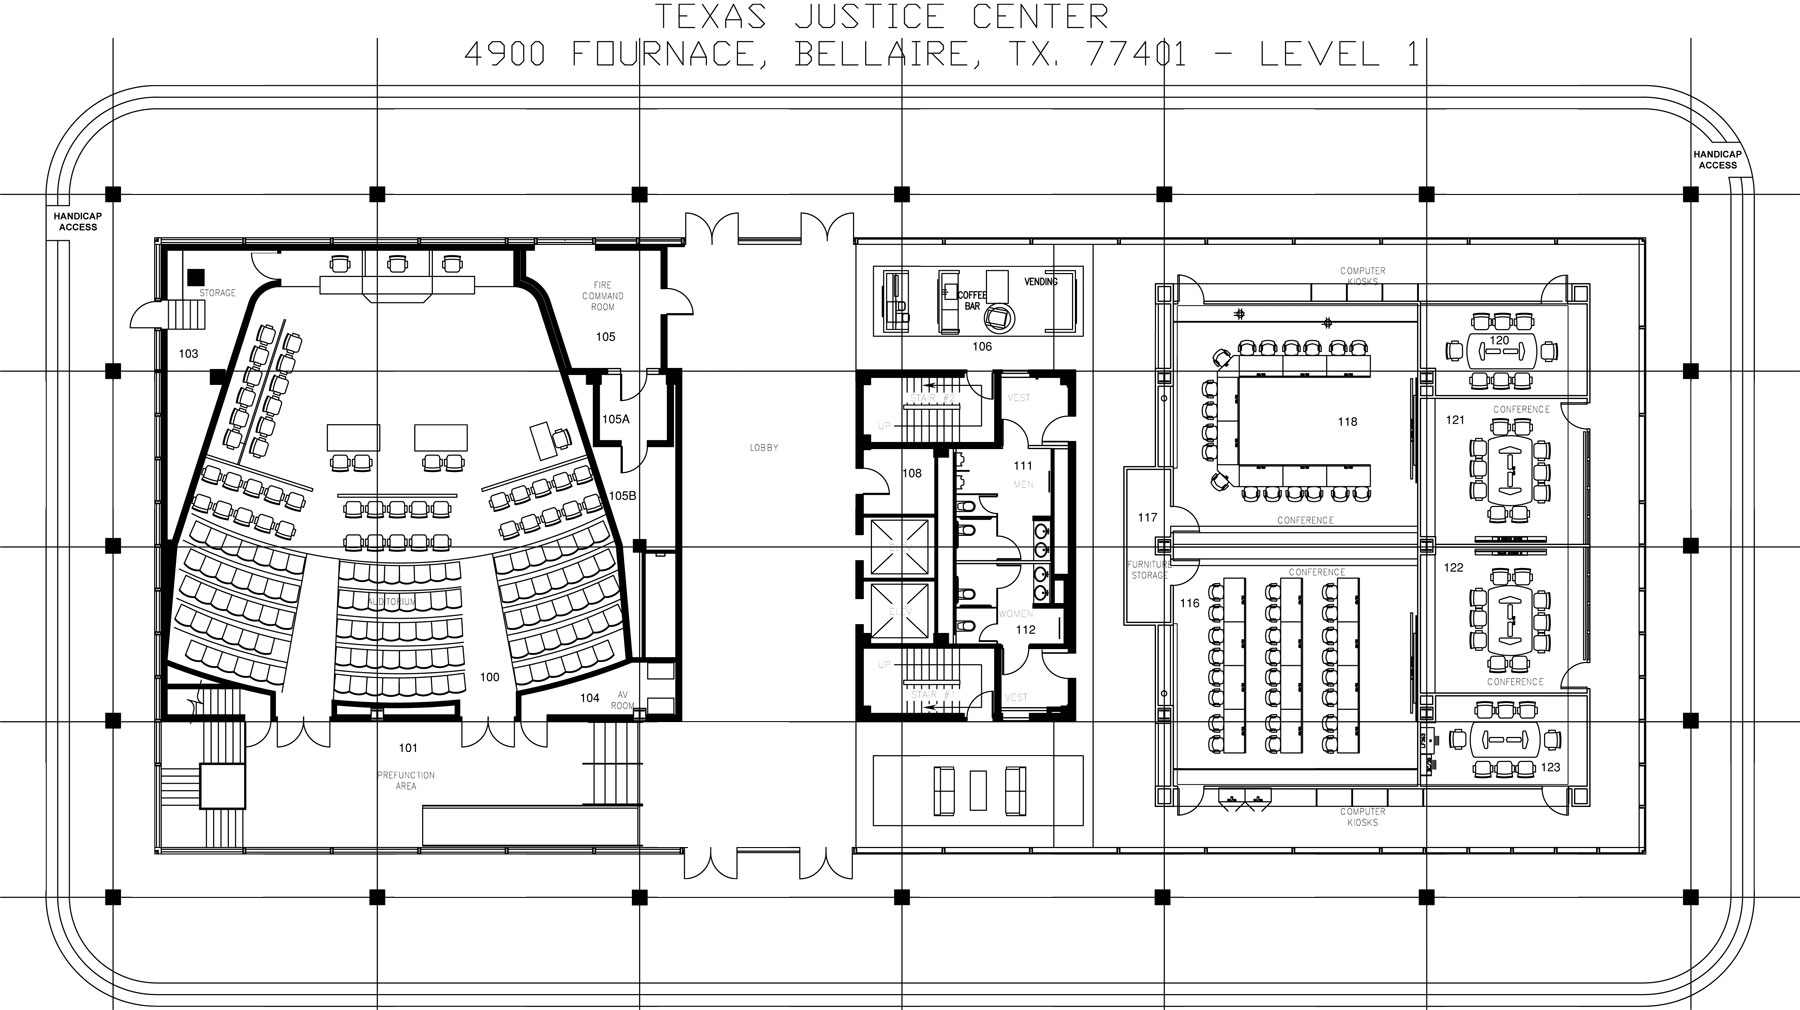 , Floor Plans, Texas Justice Center - Mediation Center & Arbitration Facility in Houston